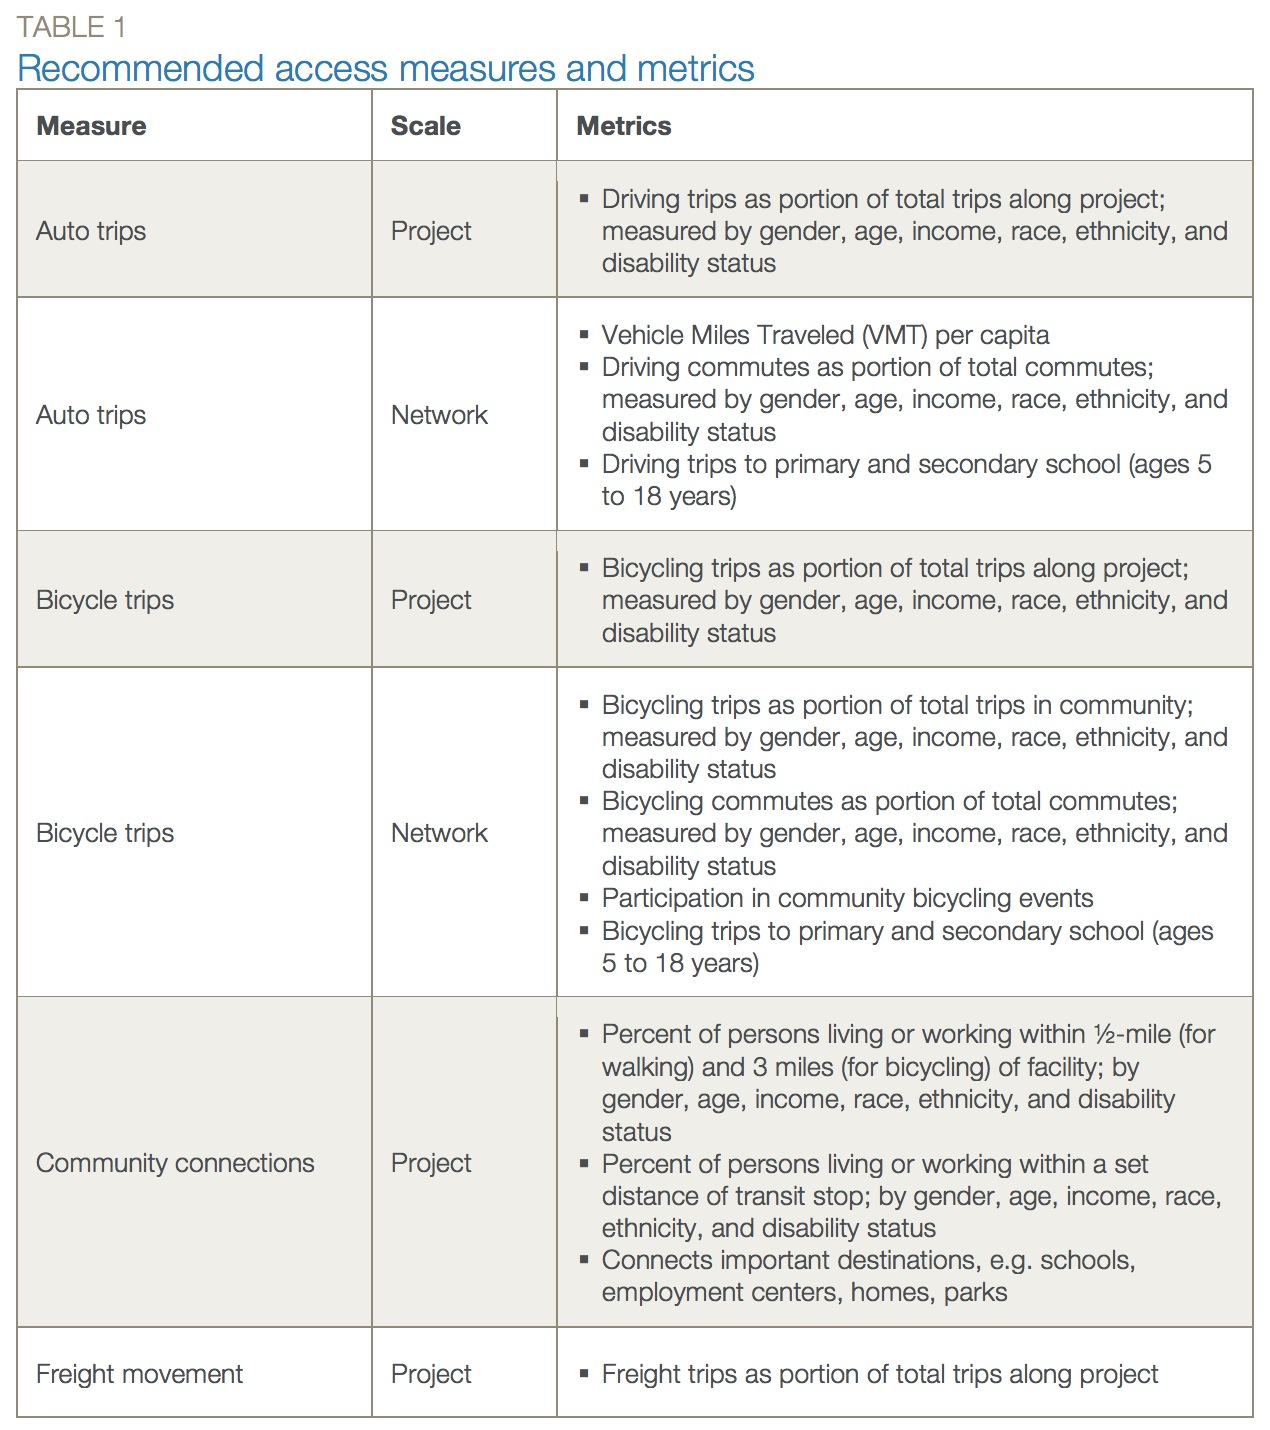 TABLE 1: Recommended access measures and metrics